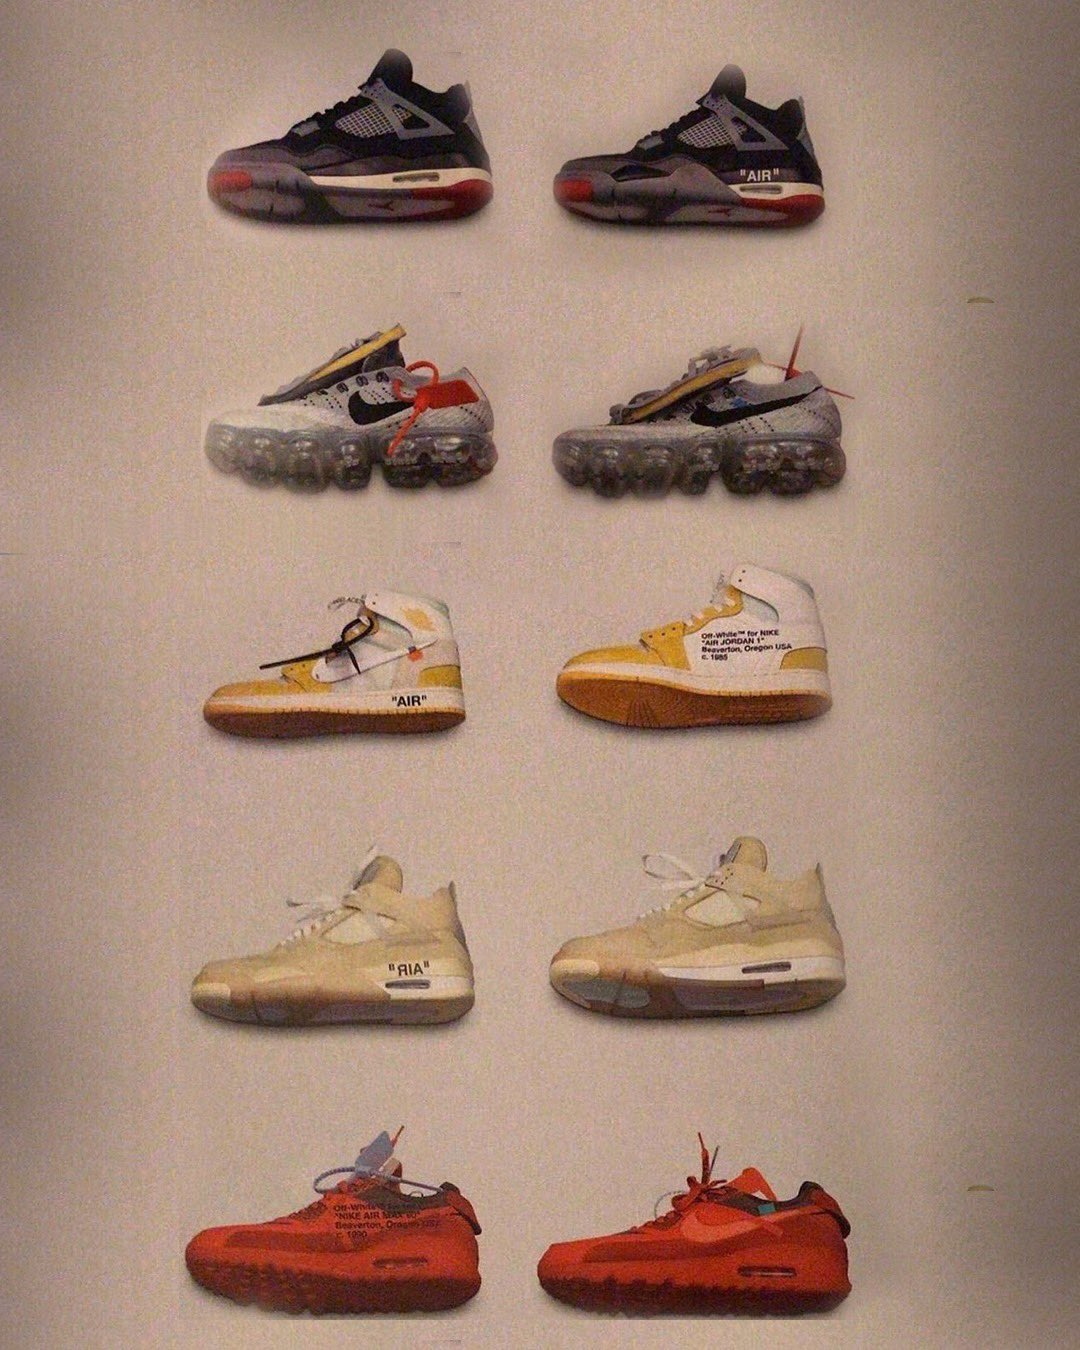 Which Virgil sample would you wanna see released? (via @raypolancojr) https://t.co/J0r5VdUqyl